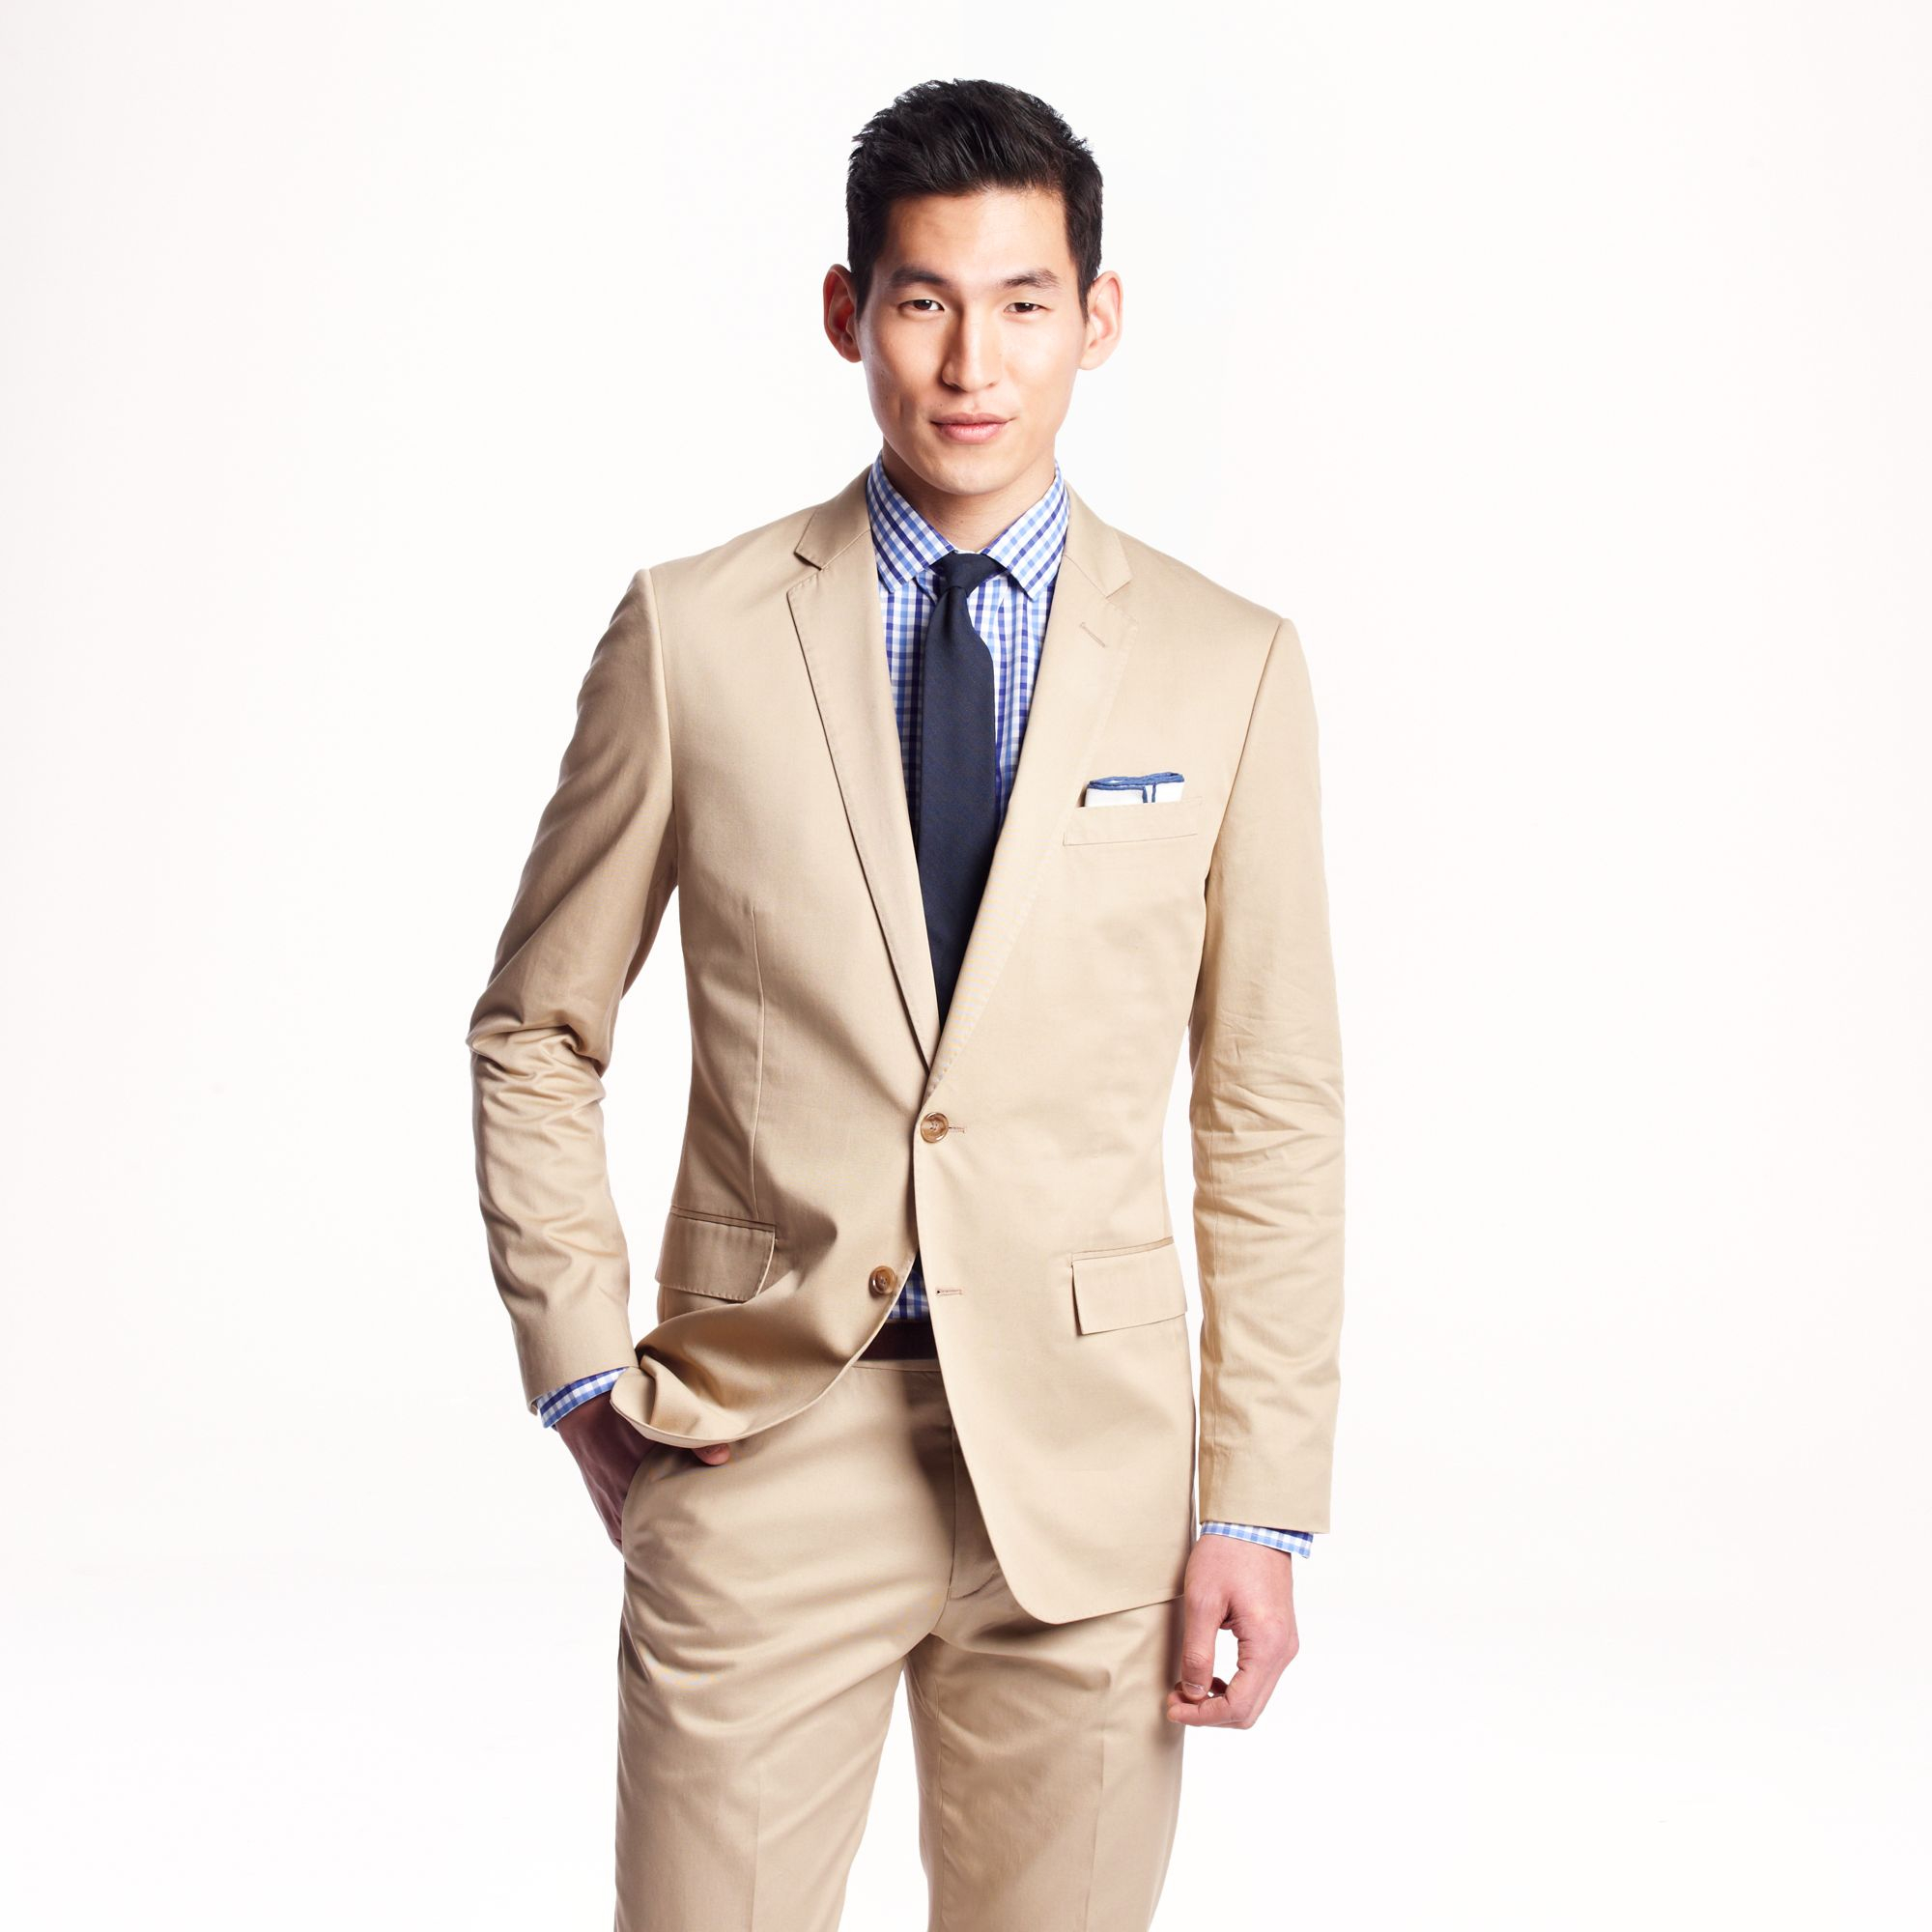 ludlow men Well-suited: 14 best men's suits for summer  j crew italian chino ludlow suit  hiconsumption's daily newsletter.